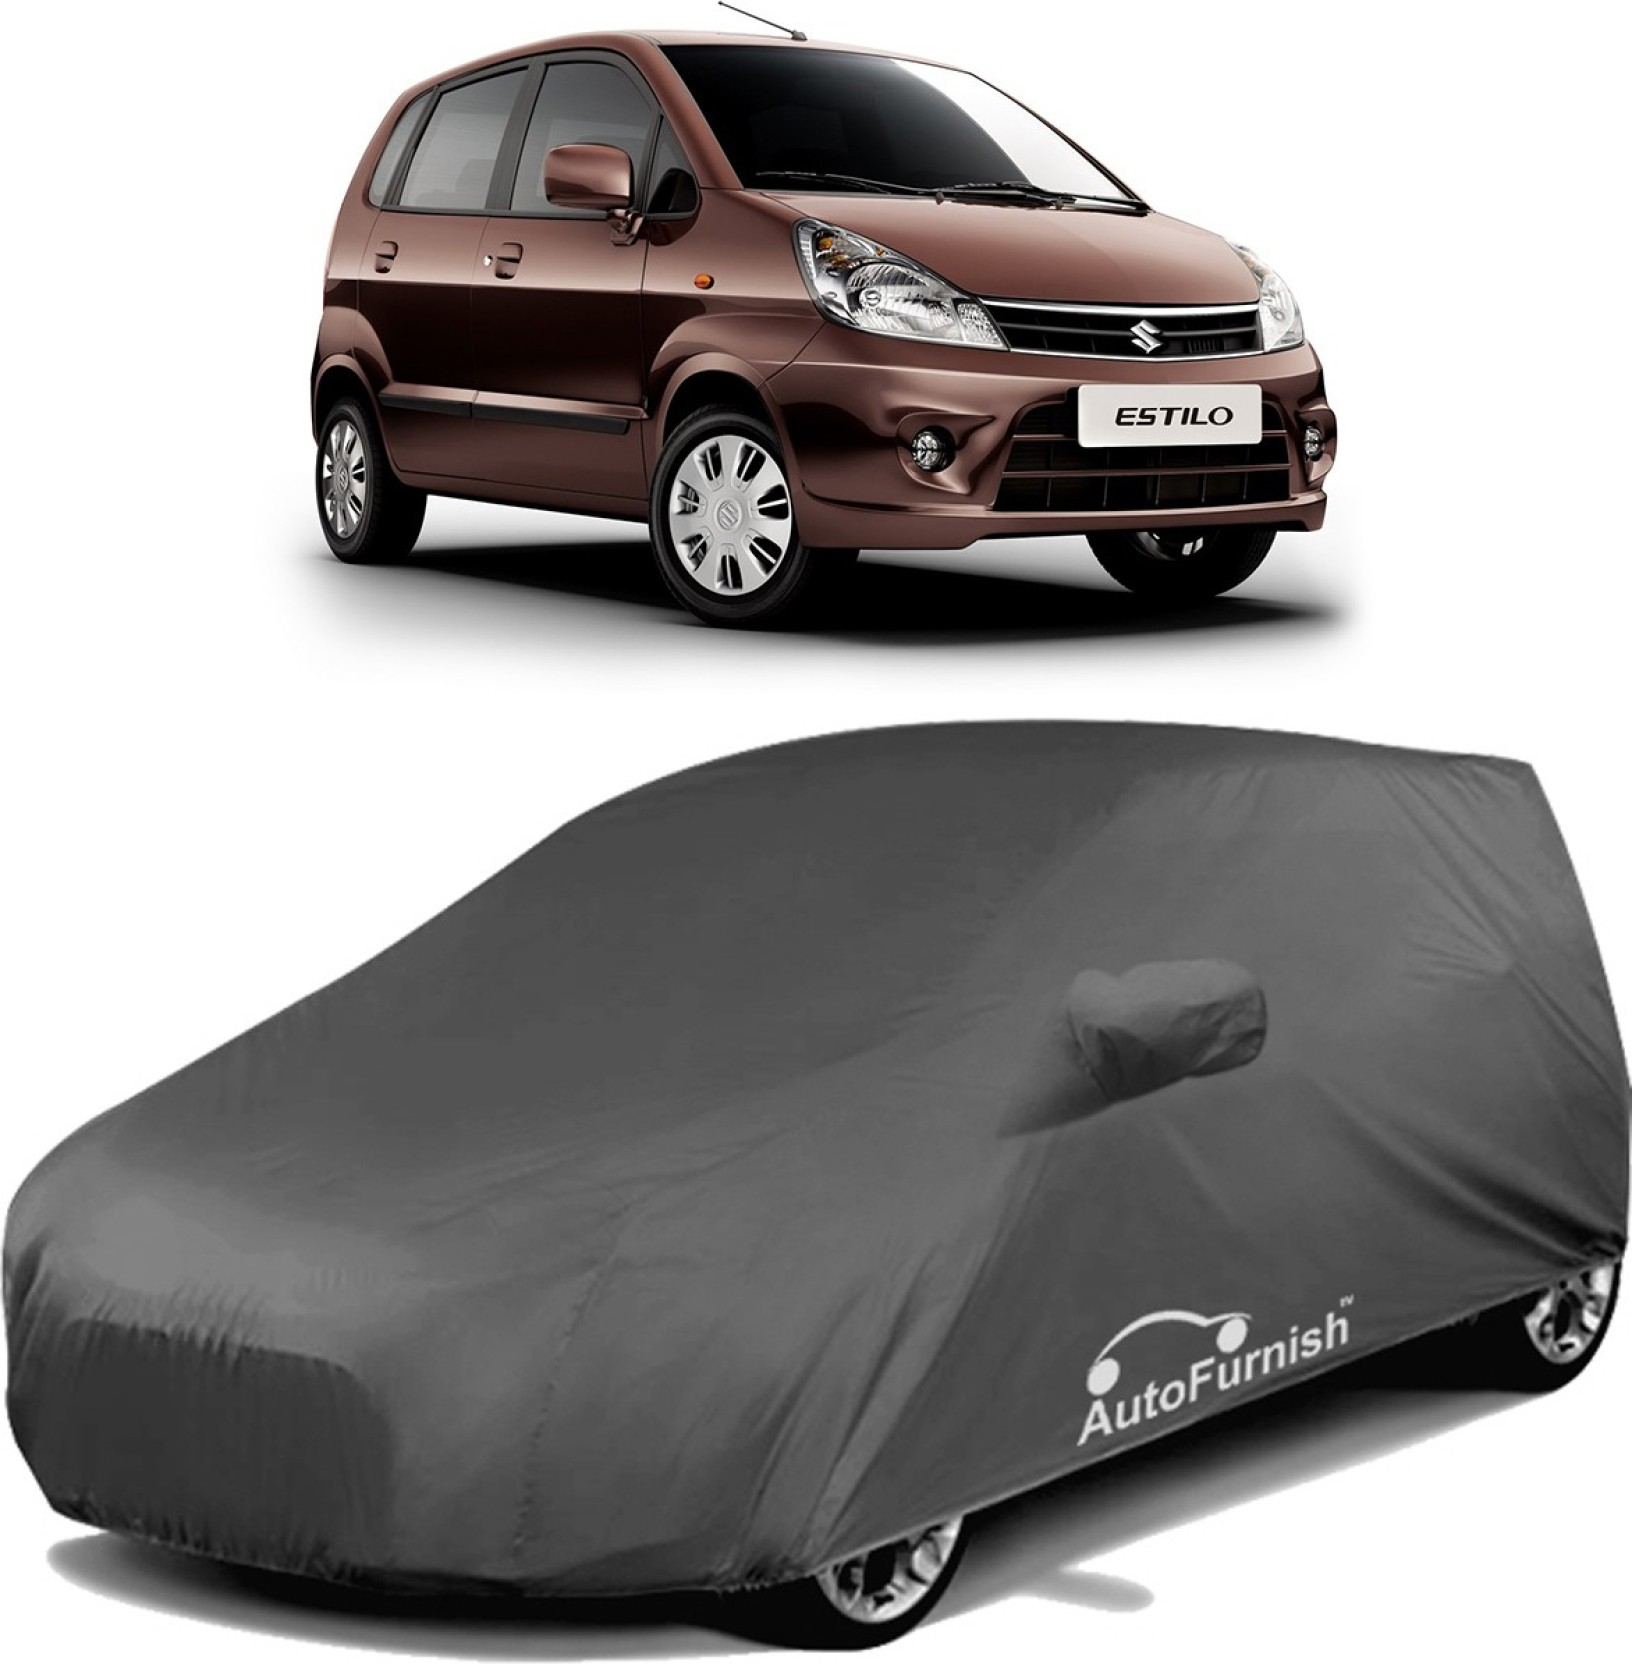 Autofurnish car cover for maruti suzuki zen estilo with mirror pockets grey